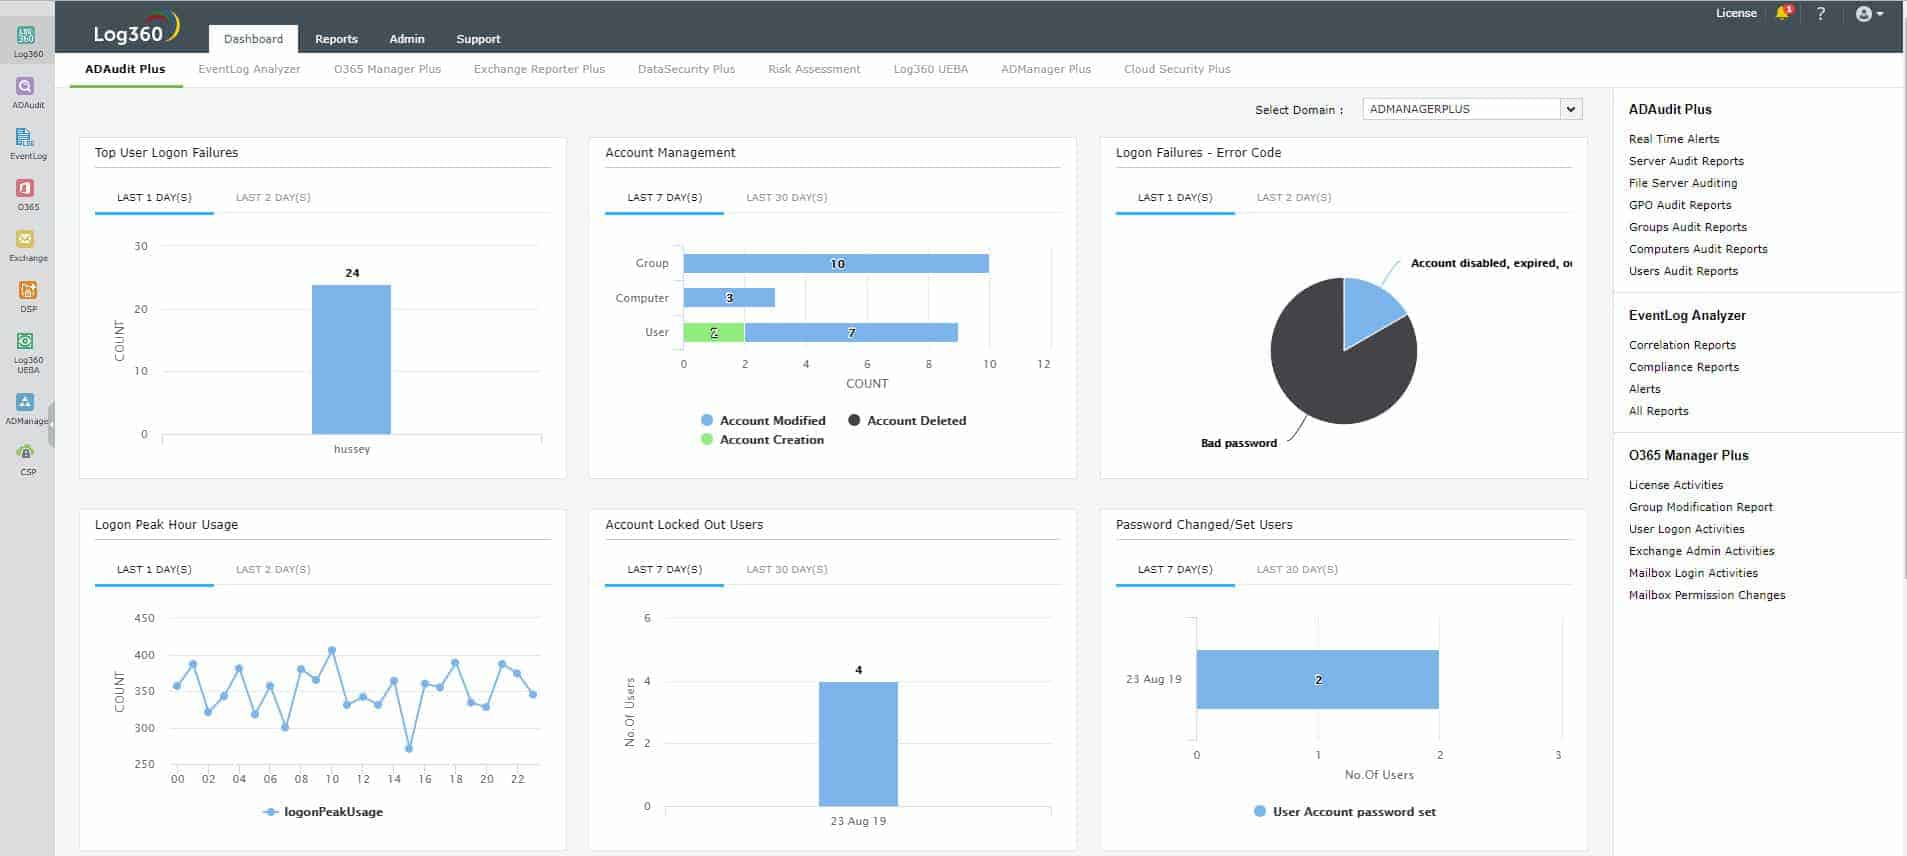 ManageEngine Log360 dashboard view